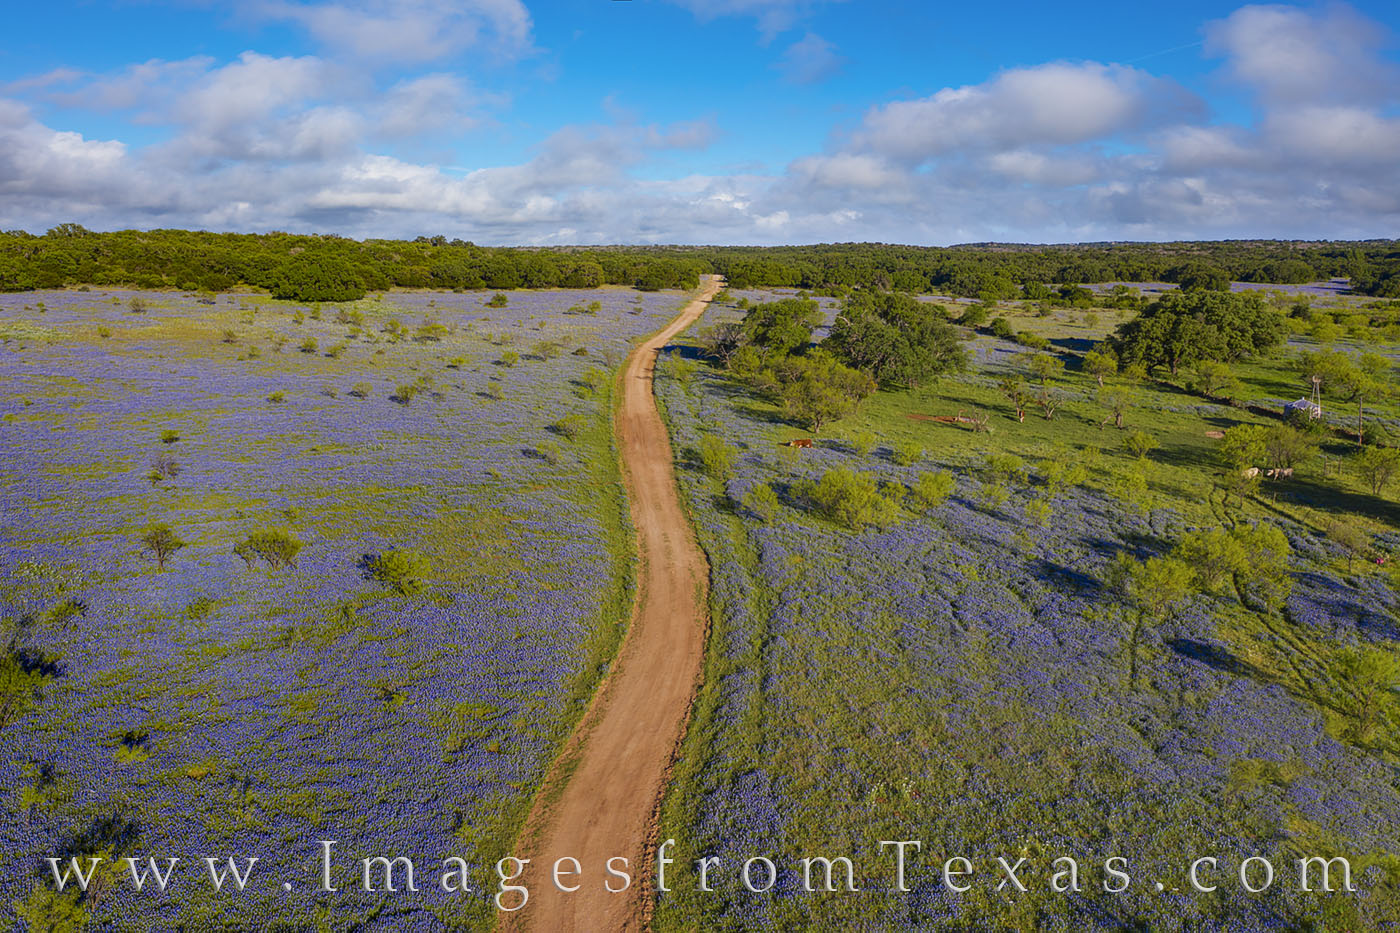 Bluebonnets, drone, aerial view, landscape, hill country, poppies, prickly poppies, 107, dirt road, backroad, rural, photo